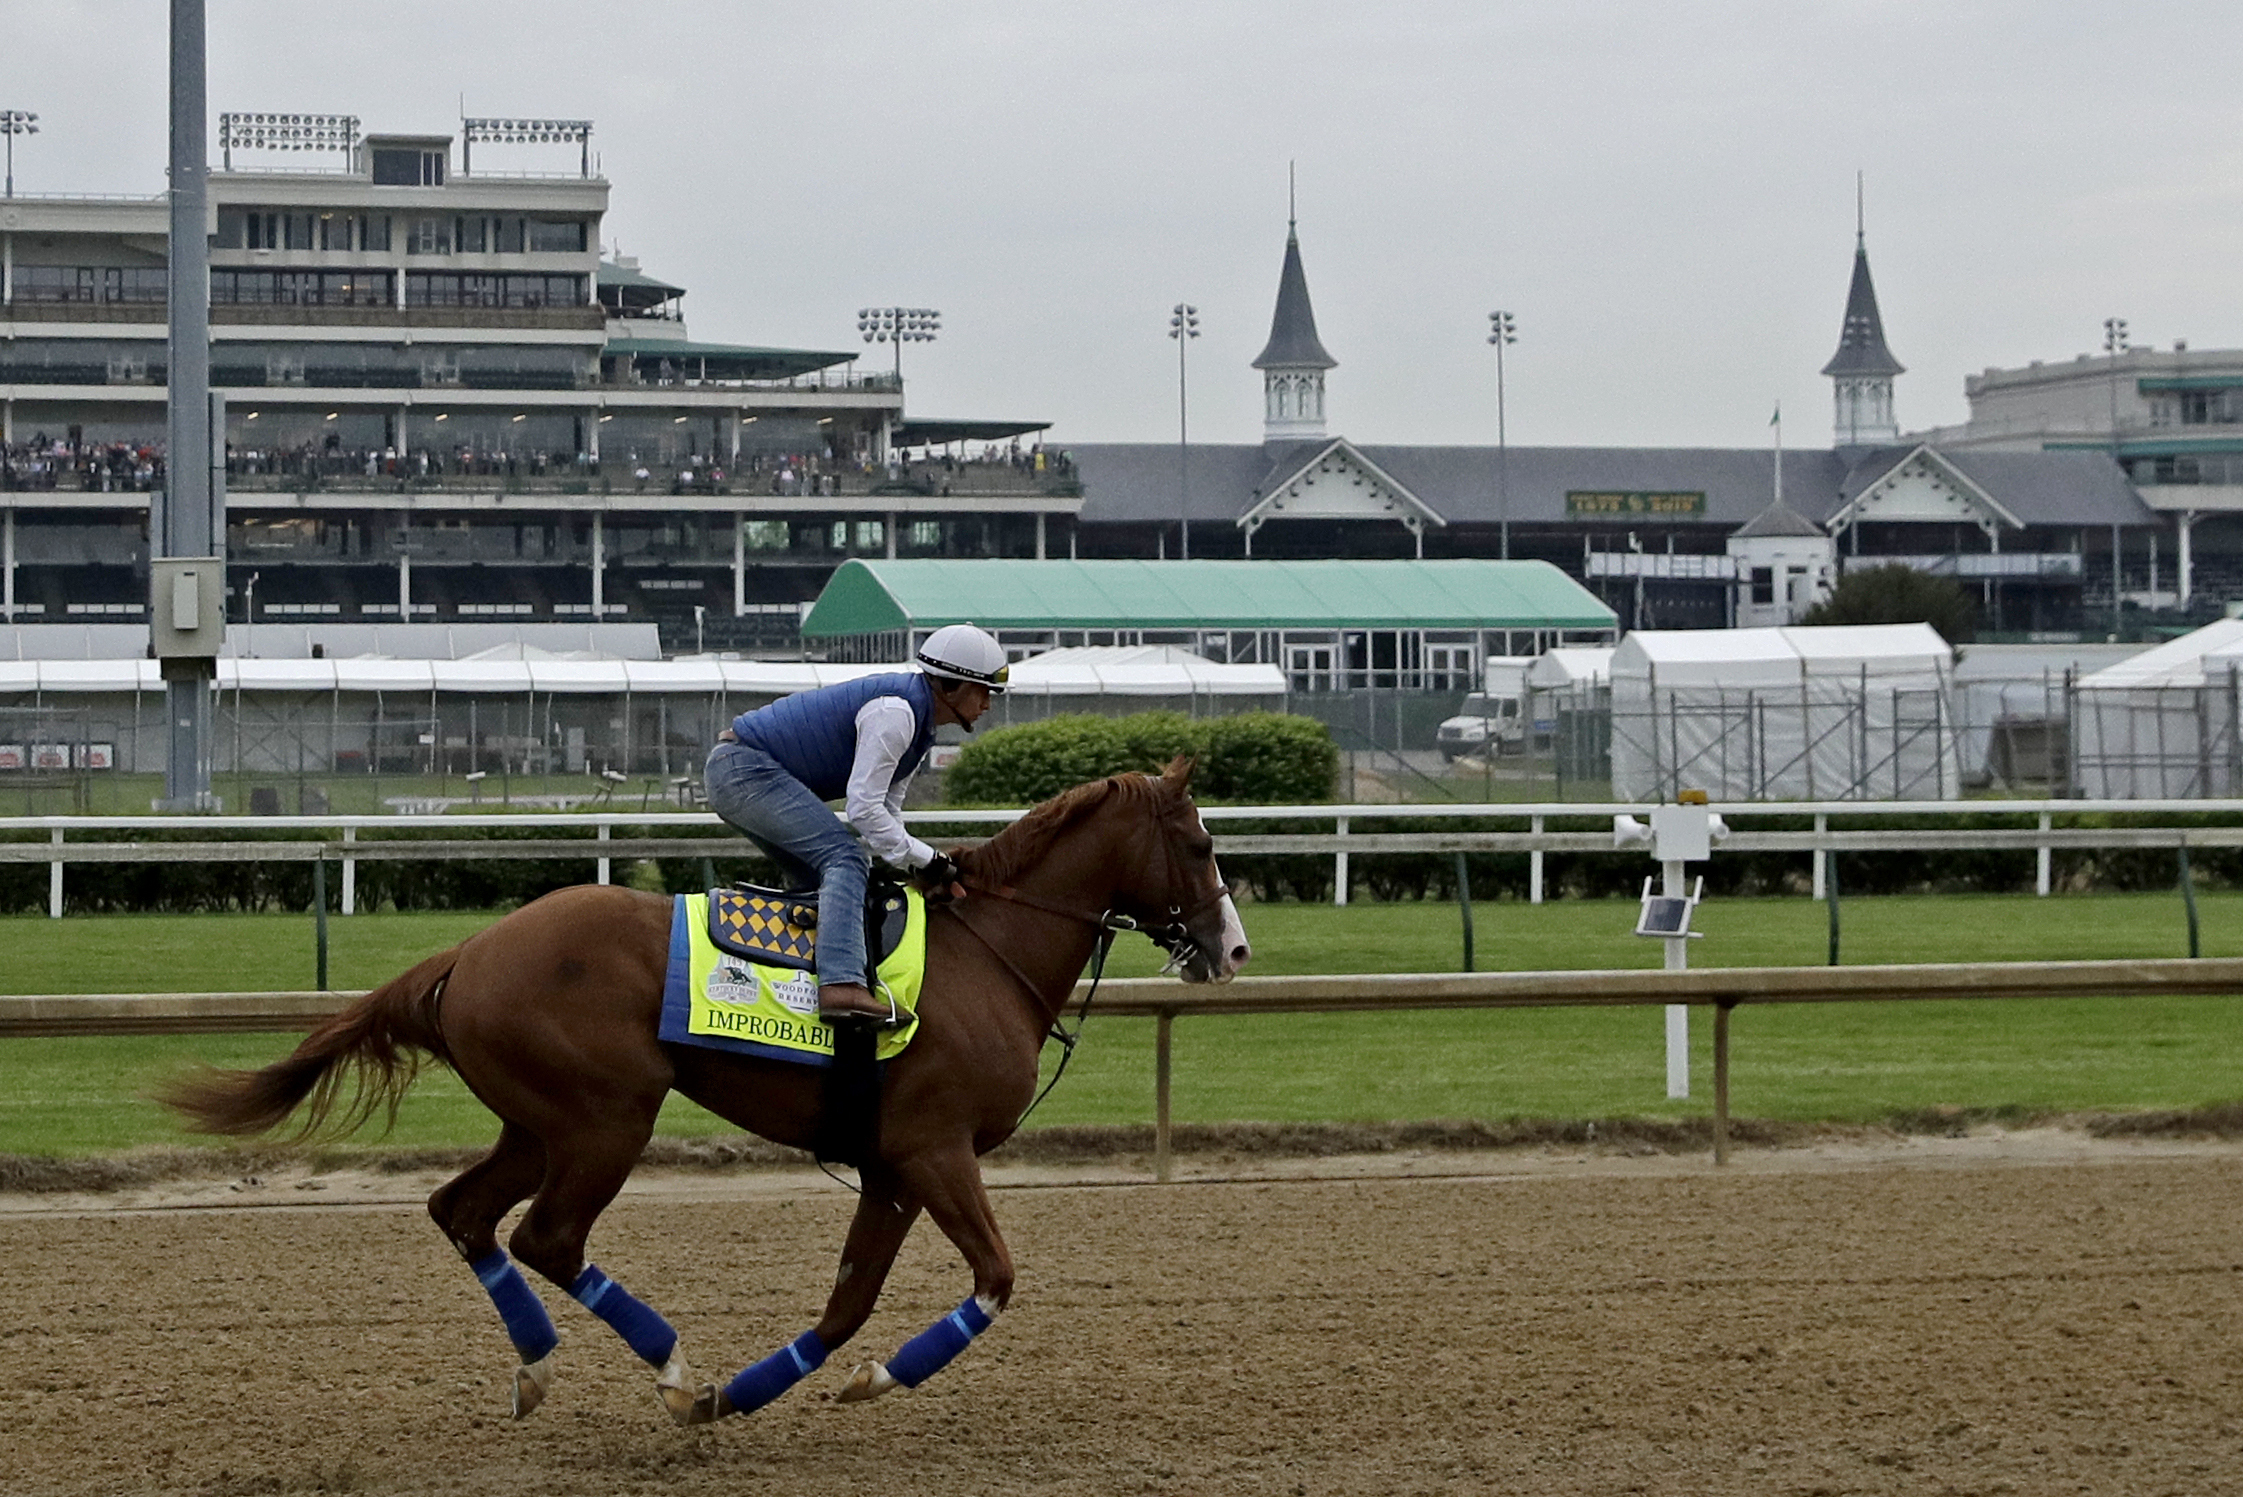 Kentucky Derby 25 Latest Odds, Lineup Info and Top Horses for ...